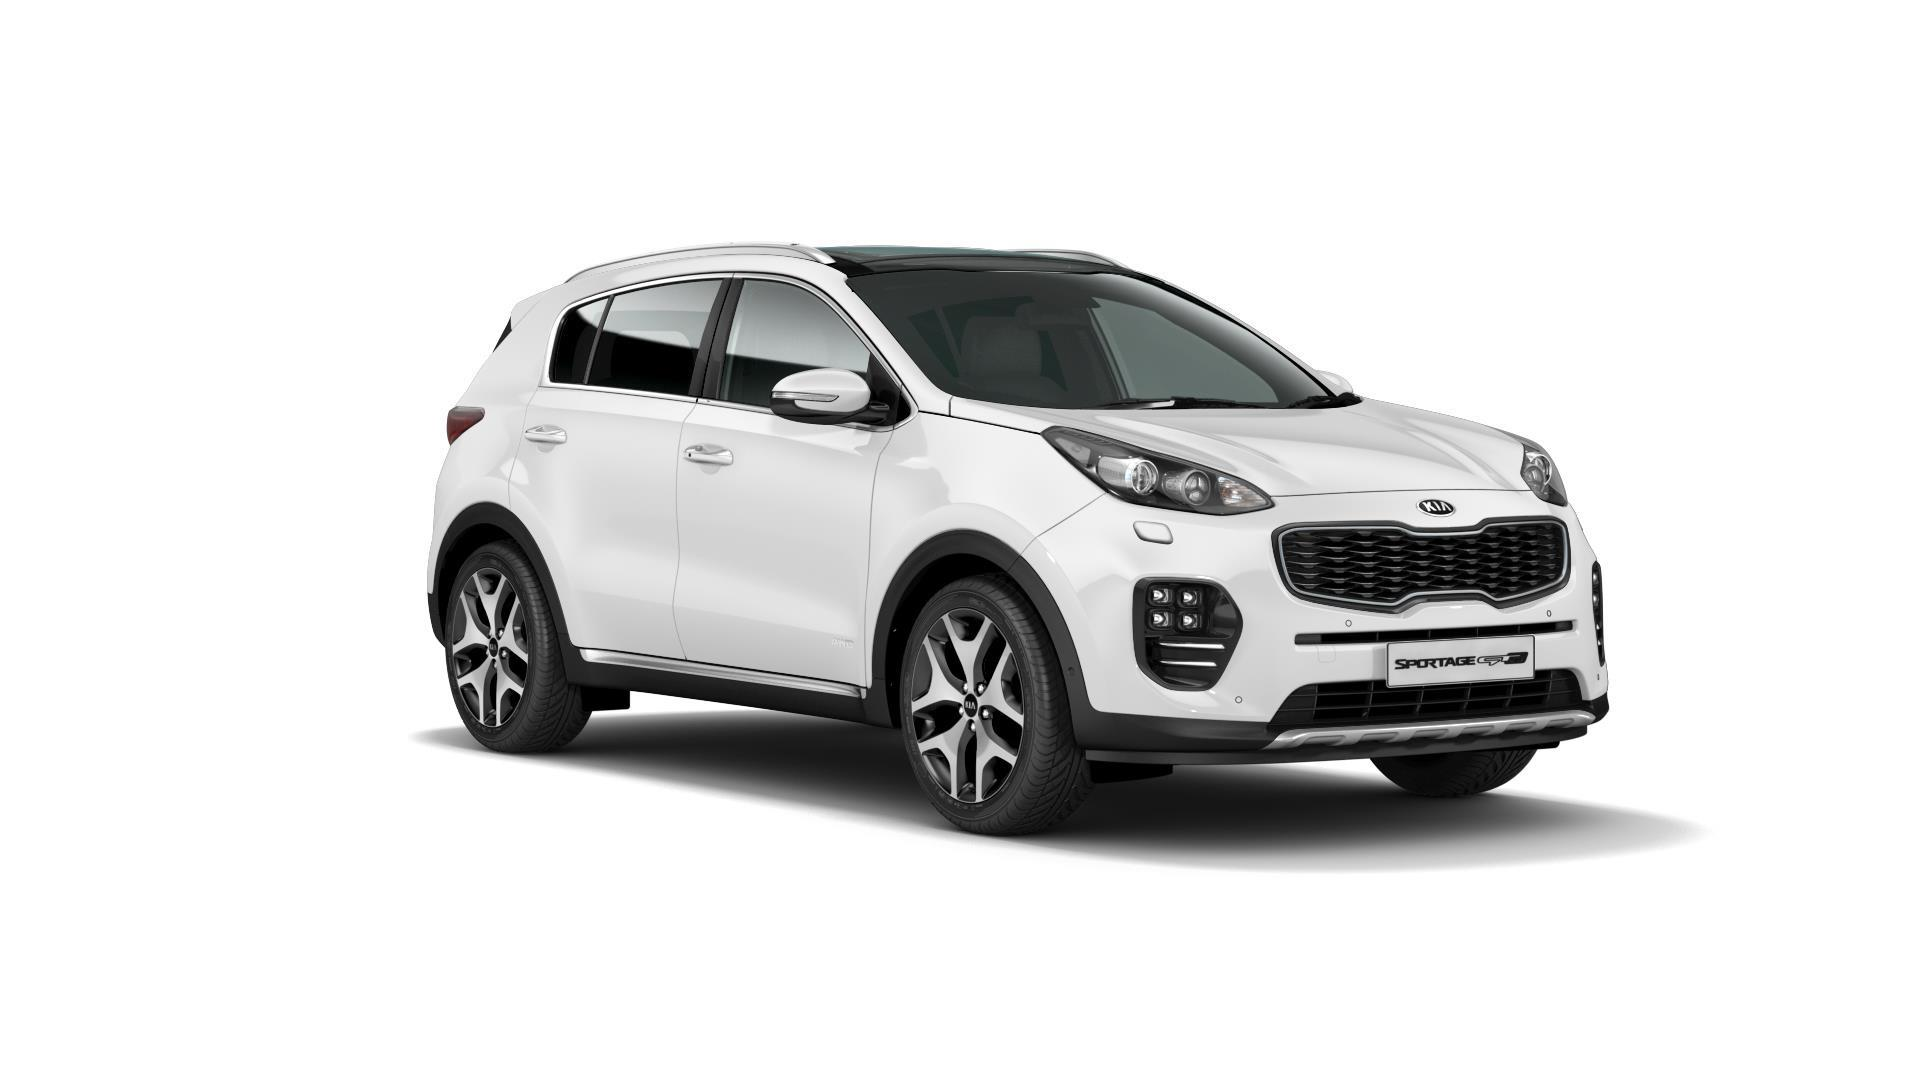 Kia Sportage UK pictures and wallpaper